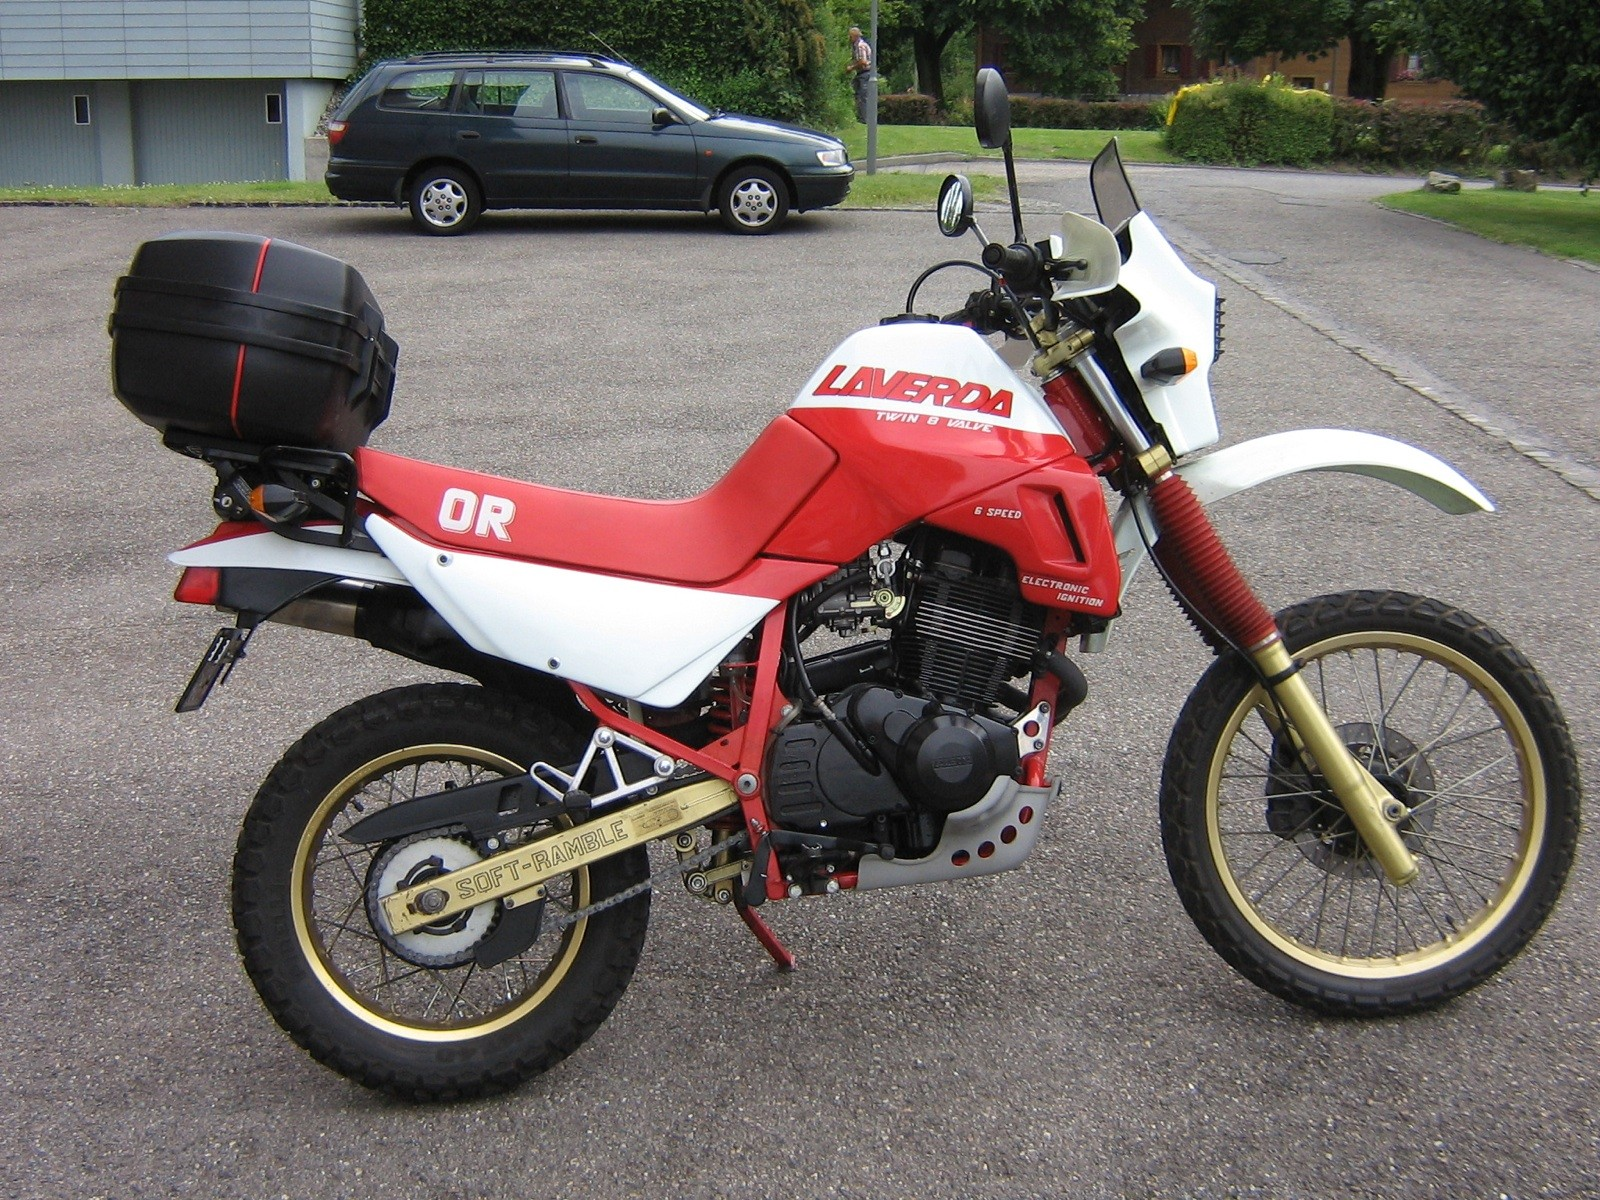 1988 Laverda OR 600 Atlas #3